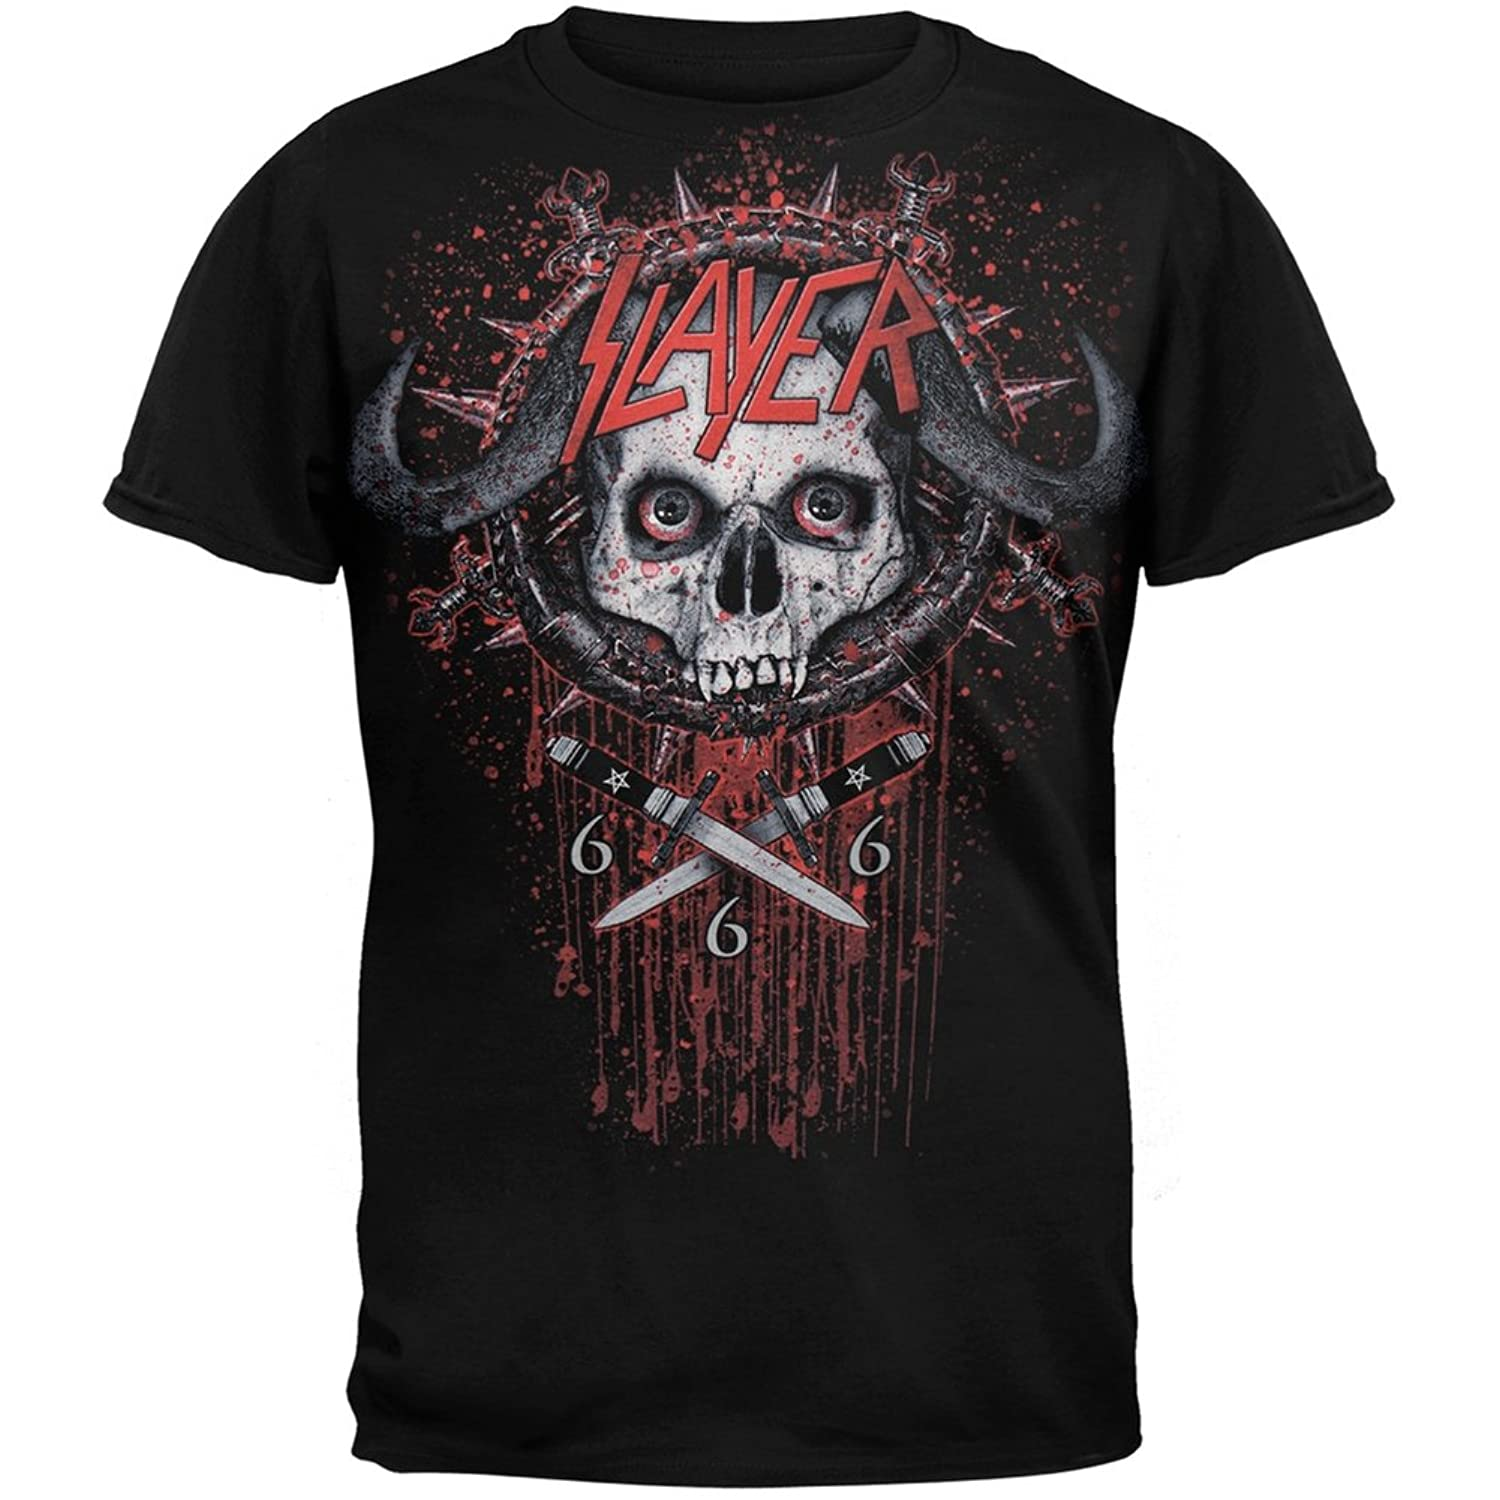 Slayer - Demon Crest Tour T-Shirt